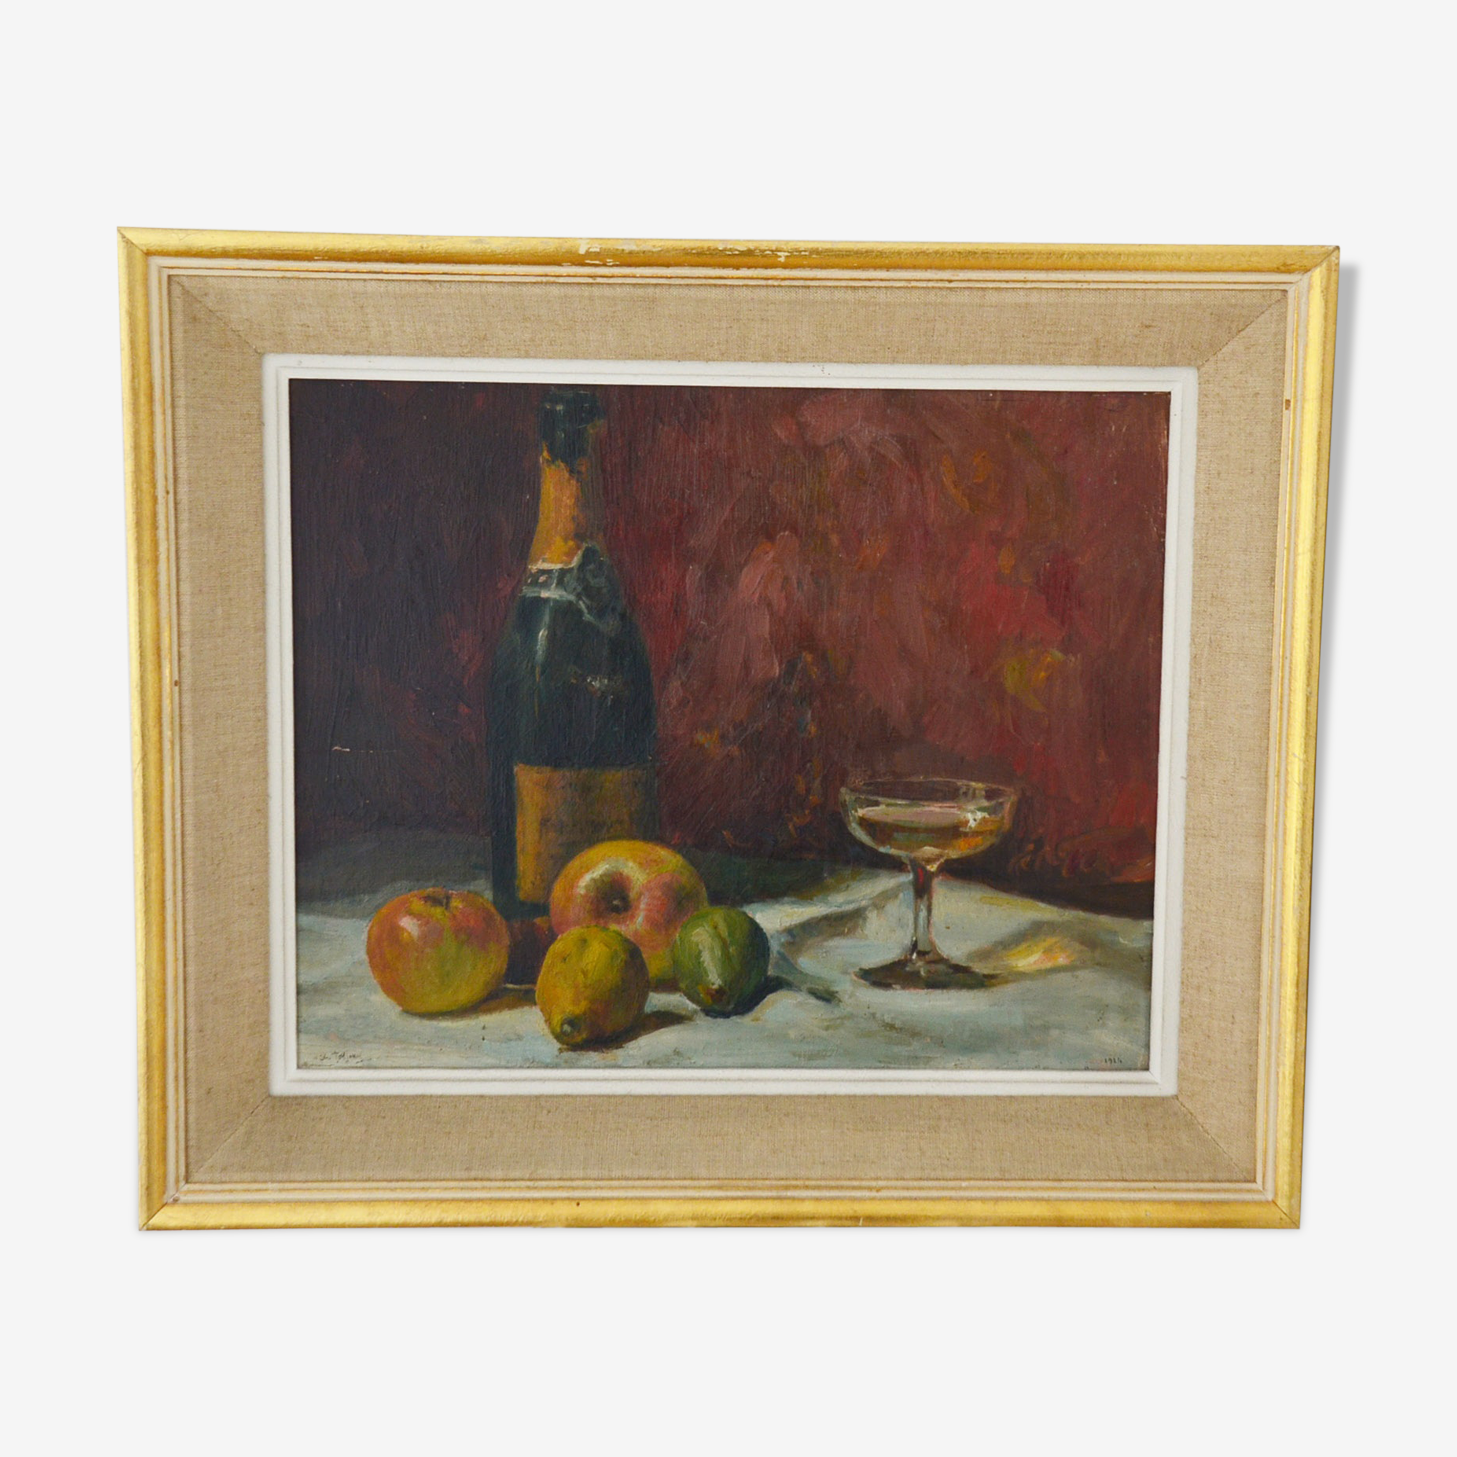 Still life paintings oil on board signed Charles Jaffeux 1924